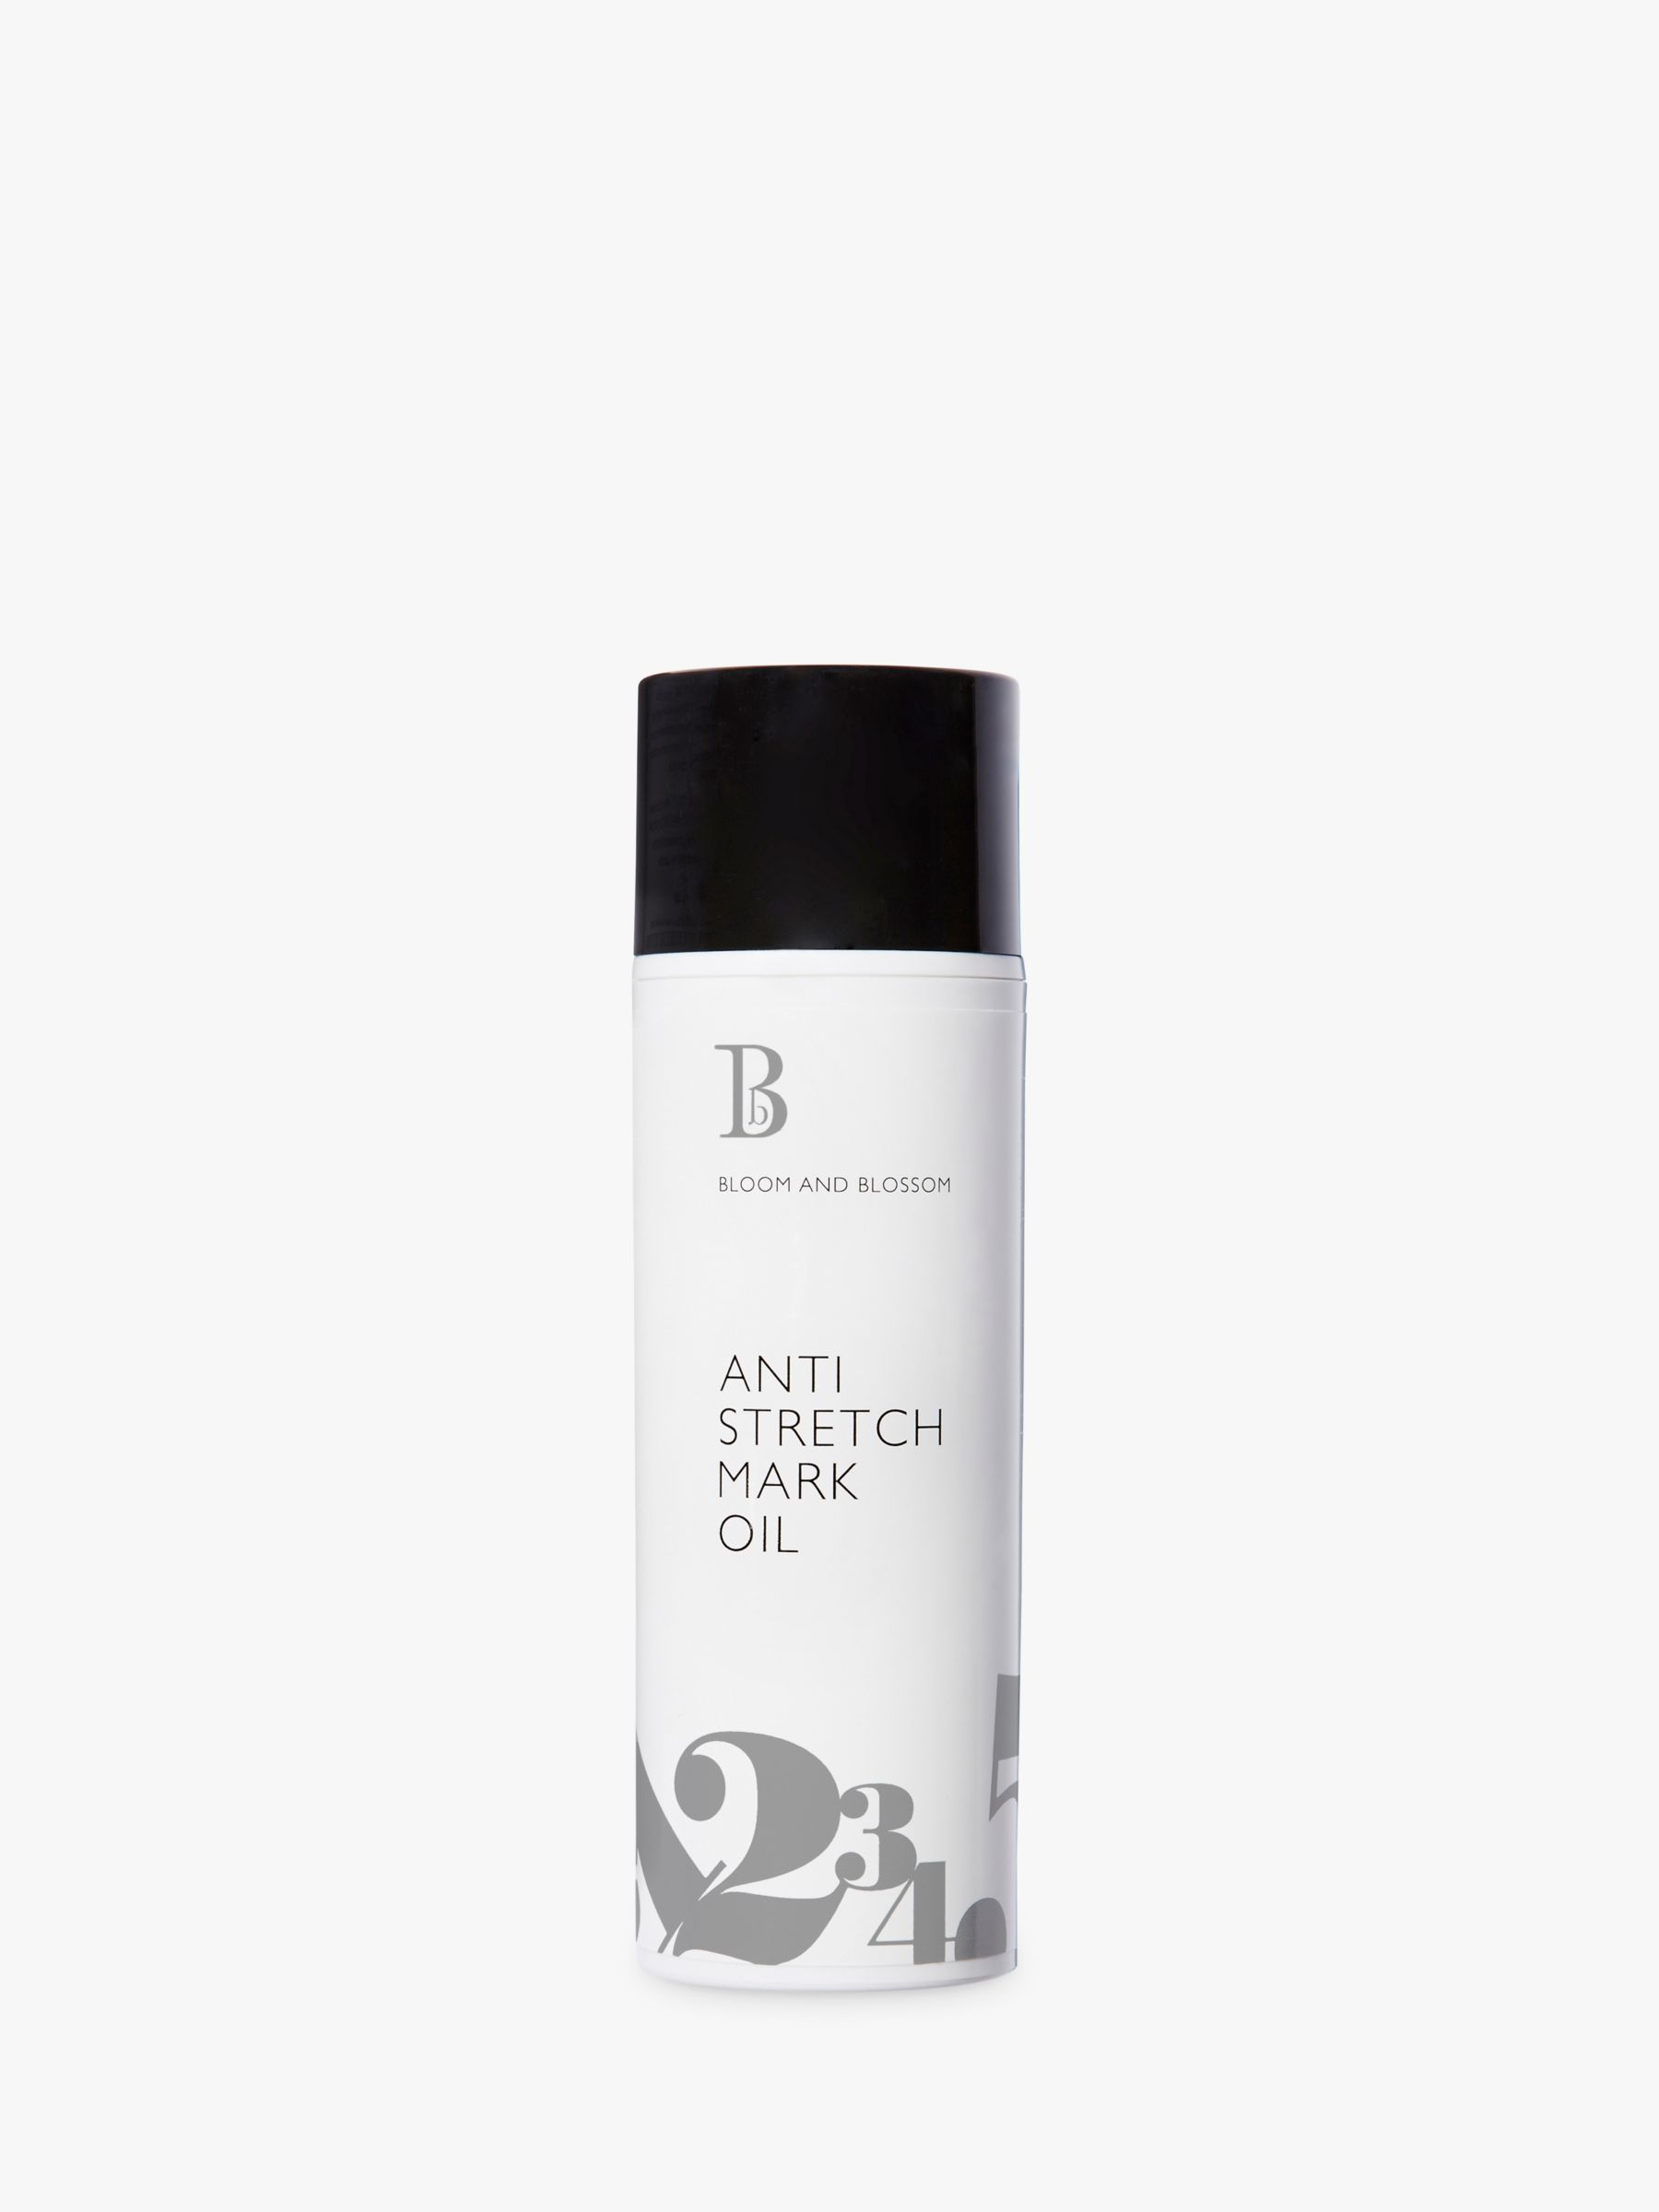 Bloom and Blossom Bloom and Blossom Anti Stretch Mark Oil, 100ml